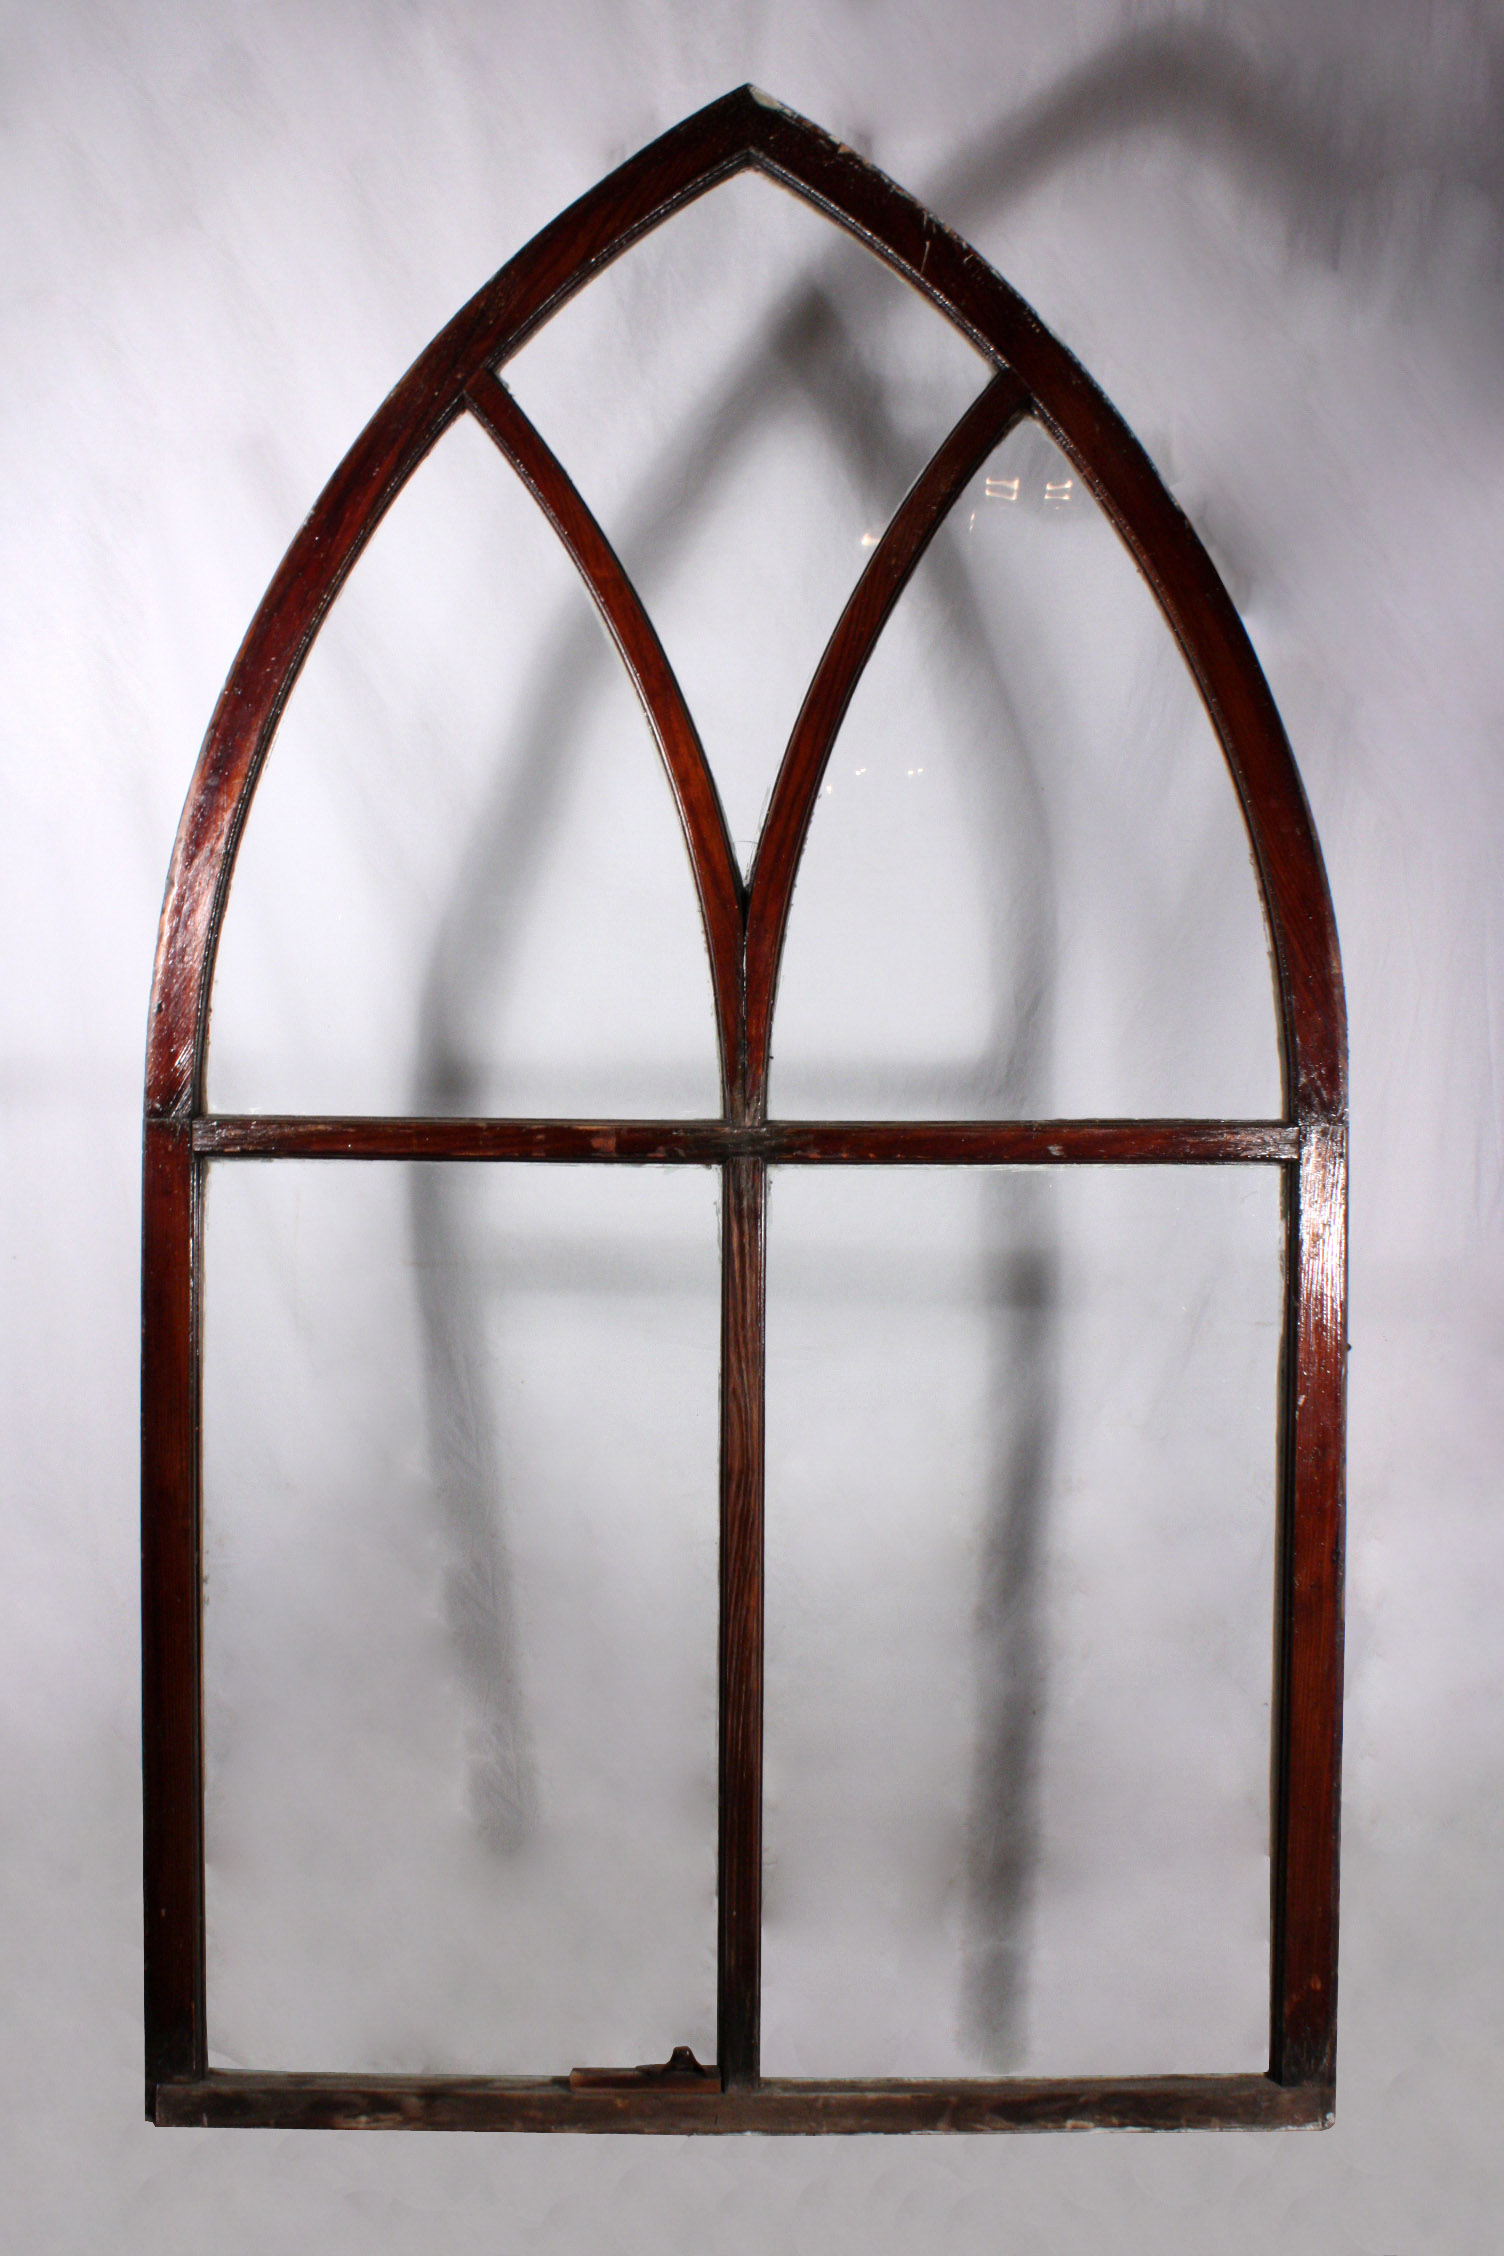 Splendid Antique Gothic Arch Window Early 1900 S Nw4